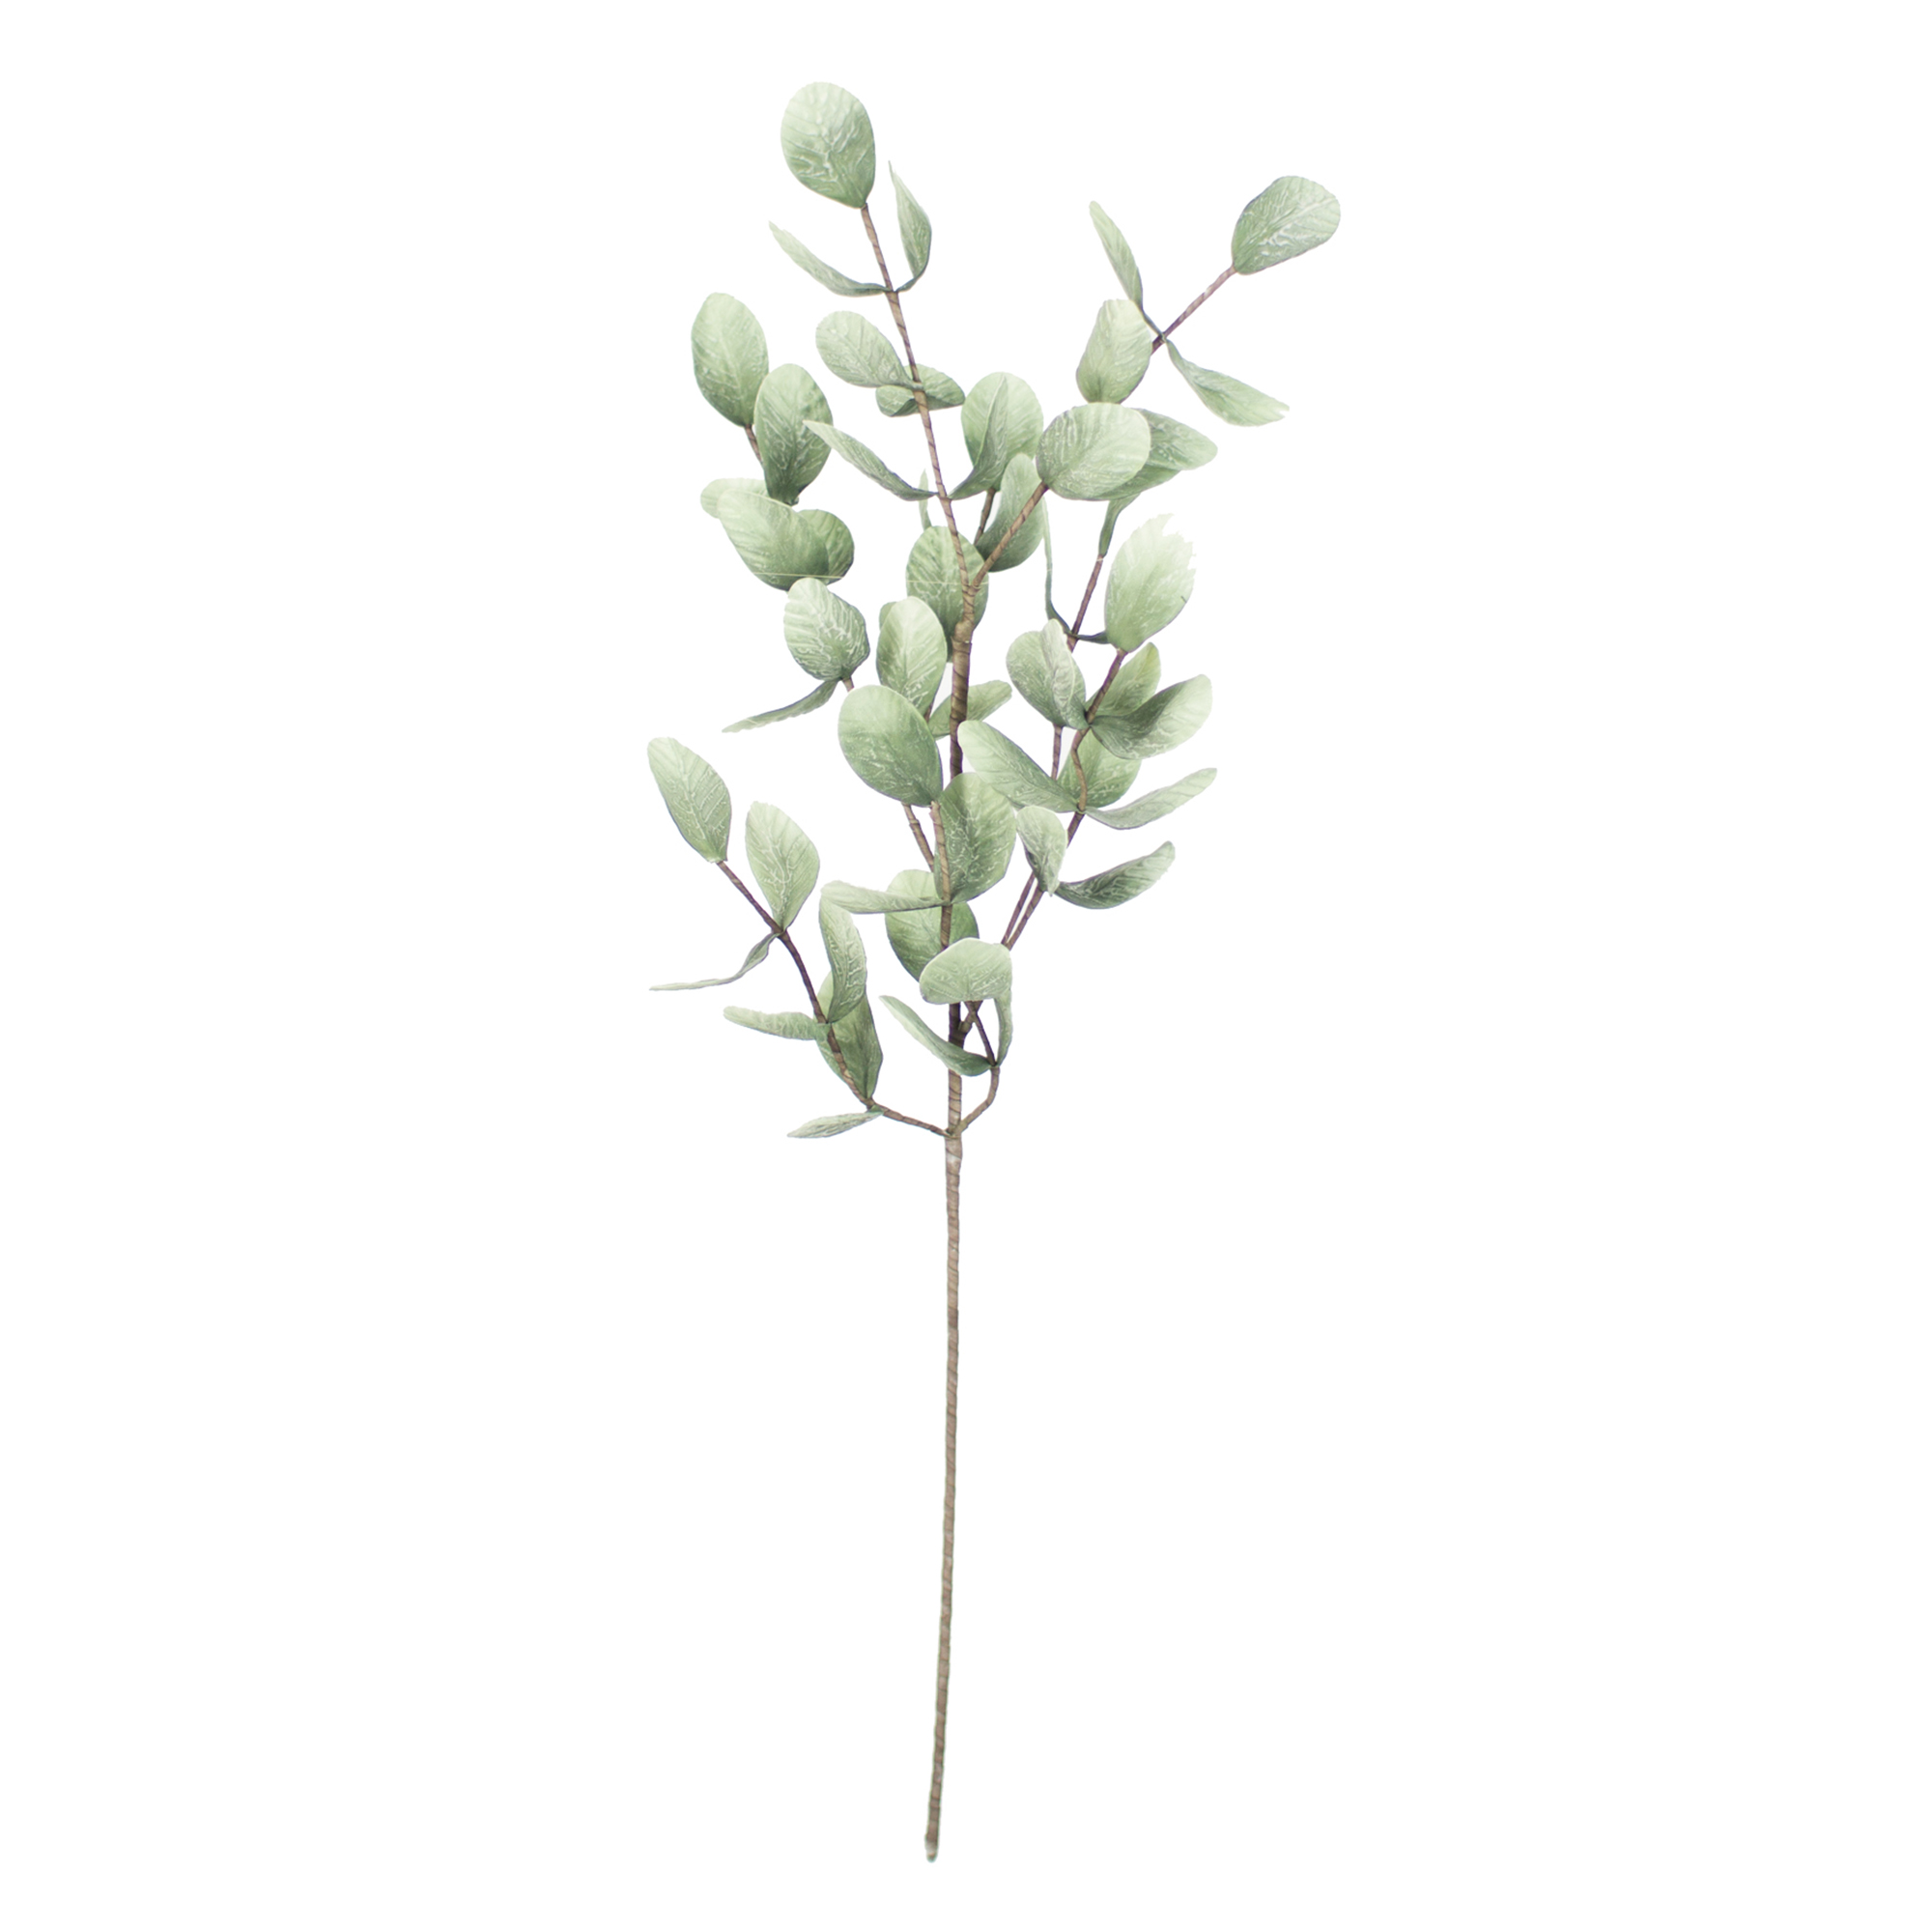 Jade Leaf Branch faux flower decor